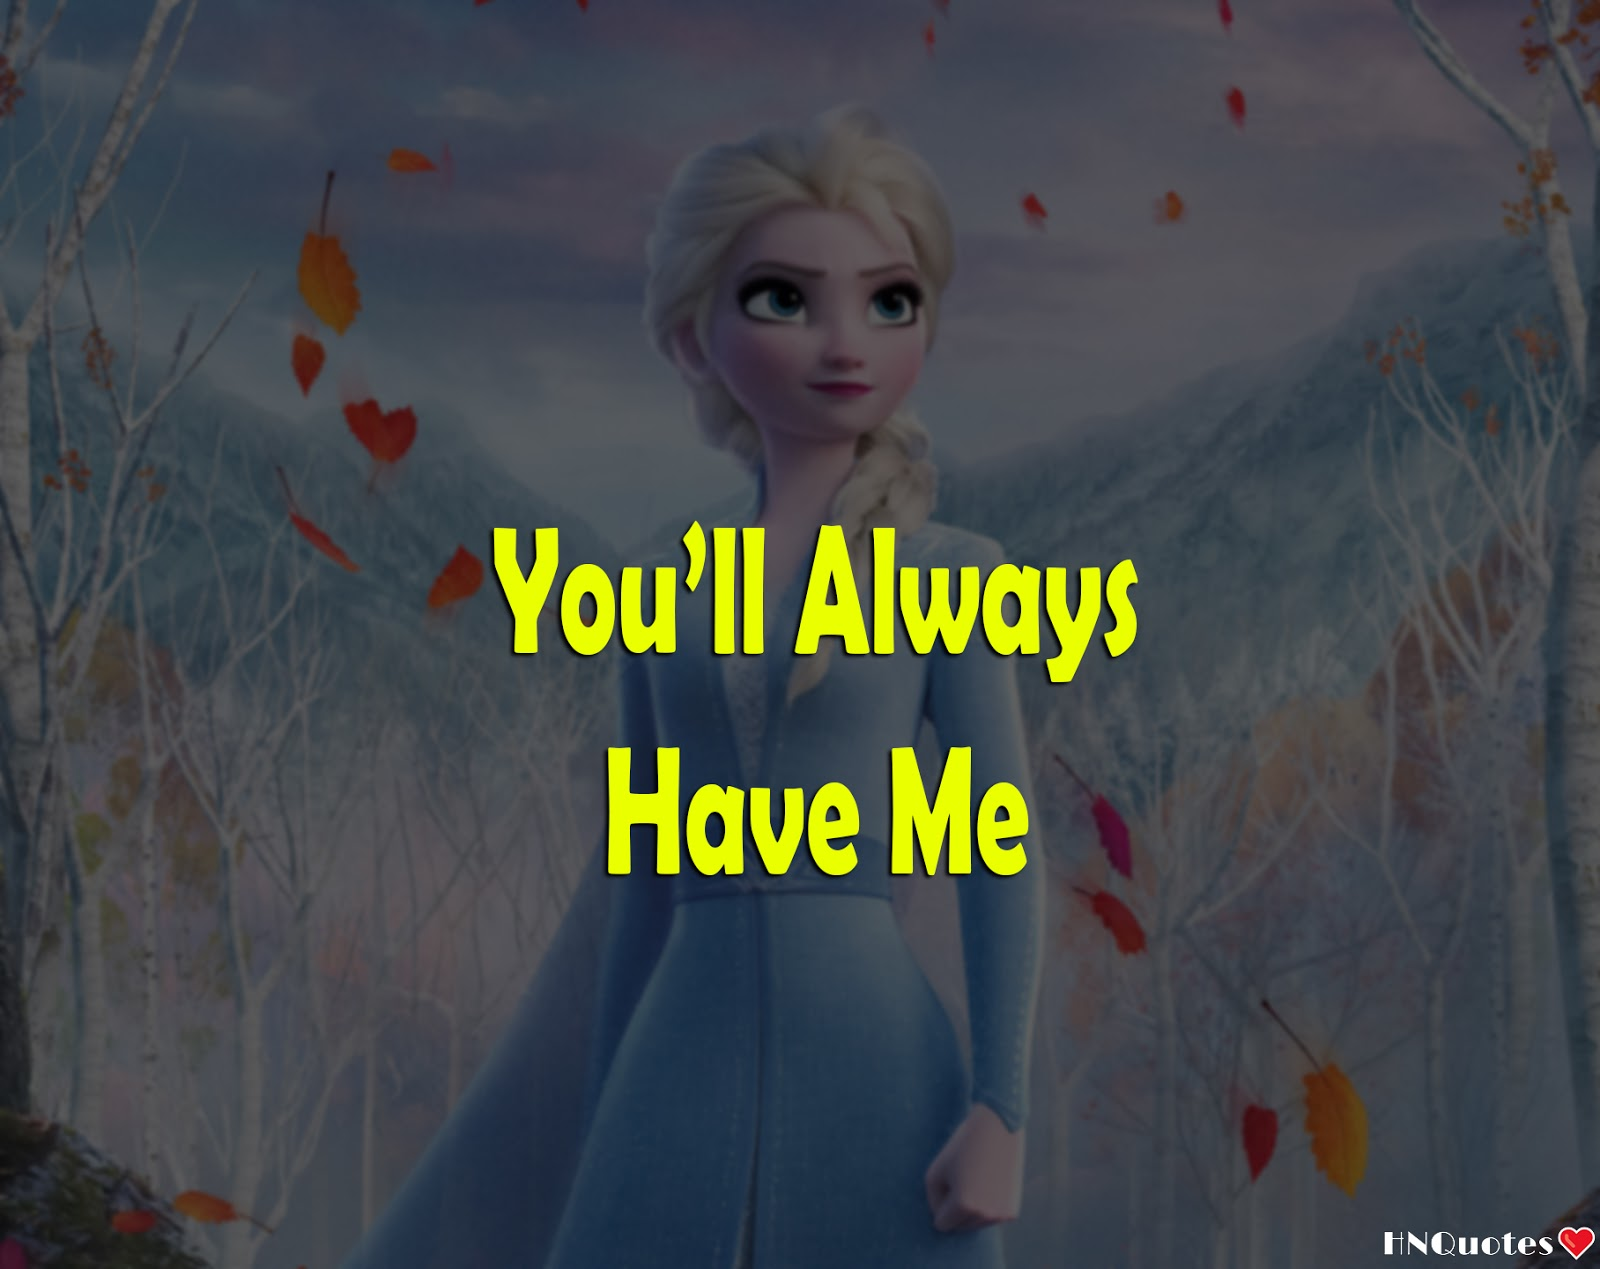 Frozen-2-Movie-Disney-Best-Quotes-Funny-Motivational-Love-Beautiful-Lines-2-[HNQuotes]